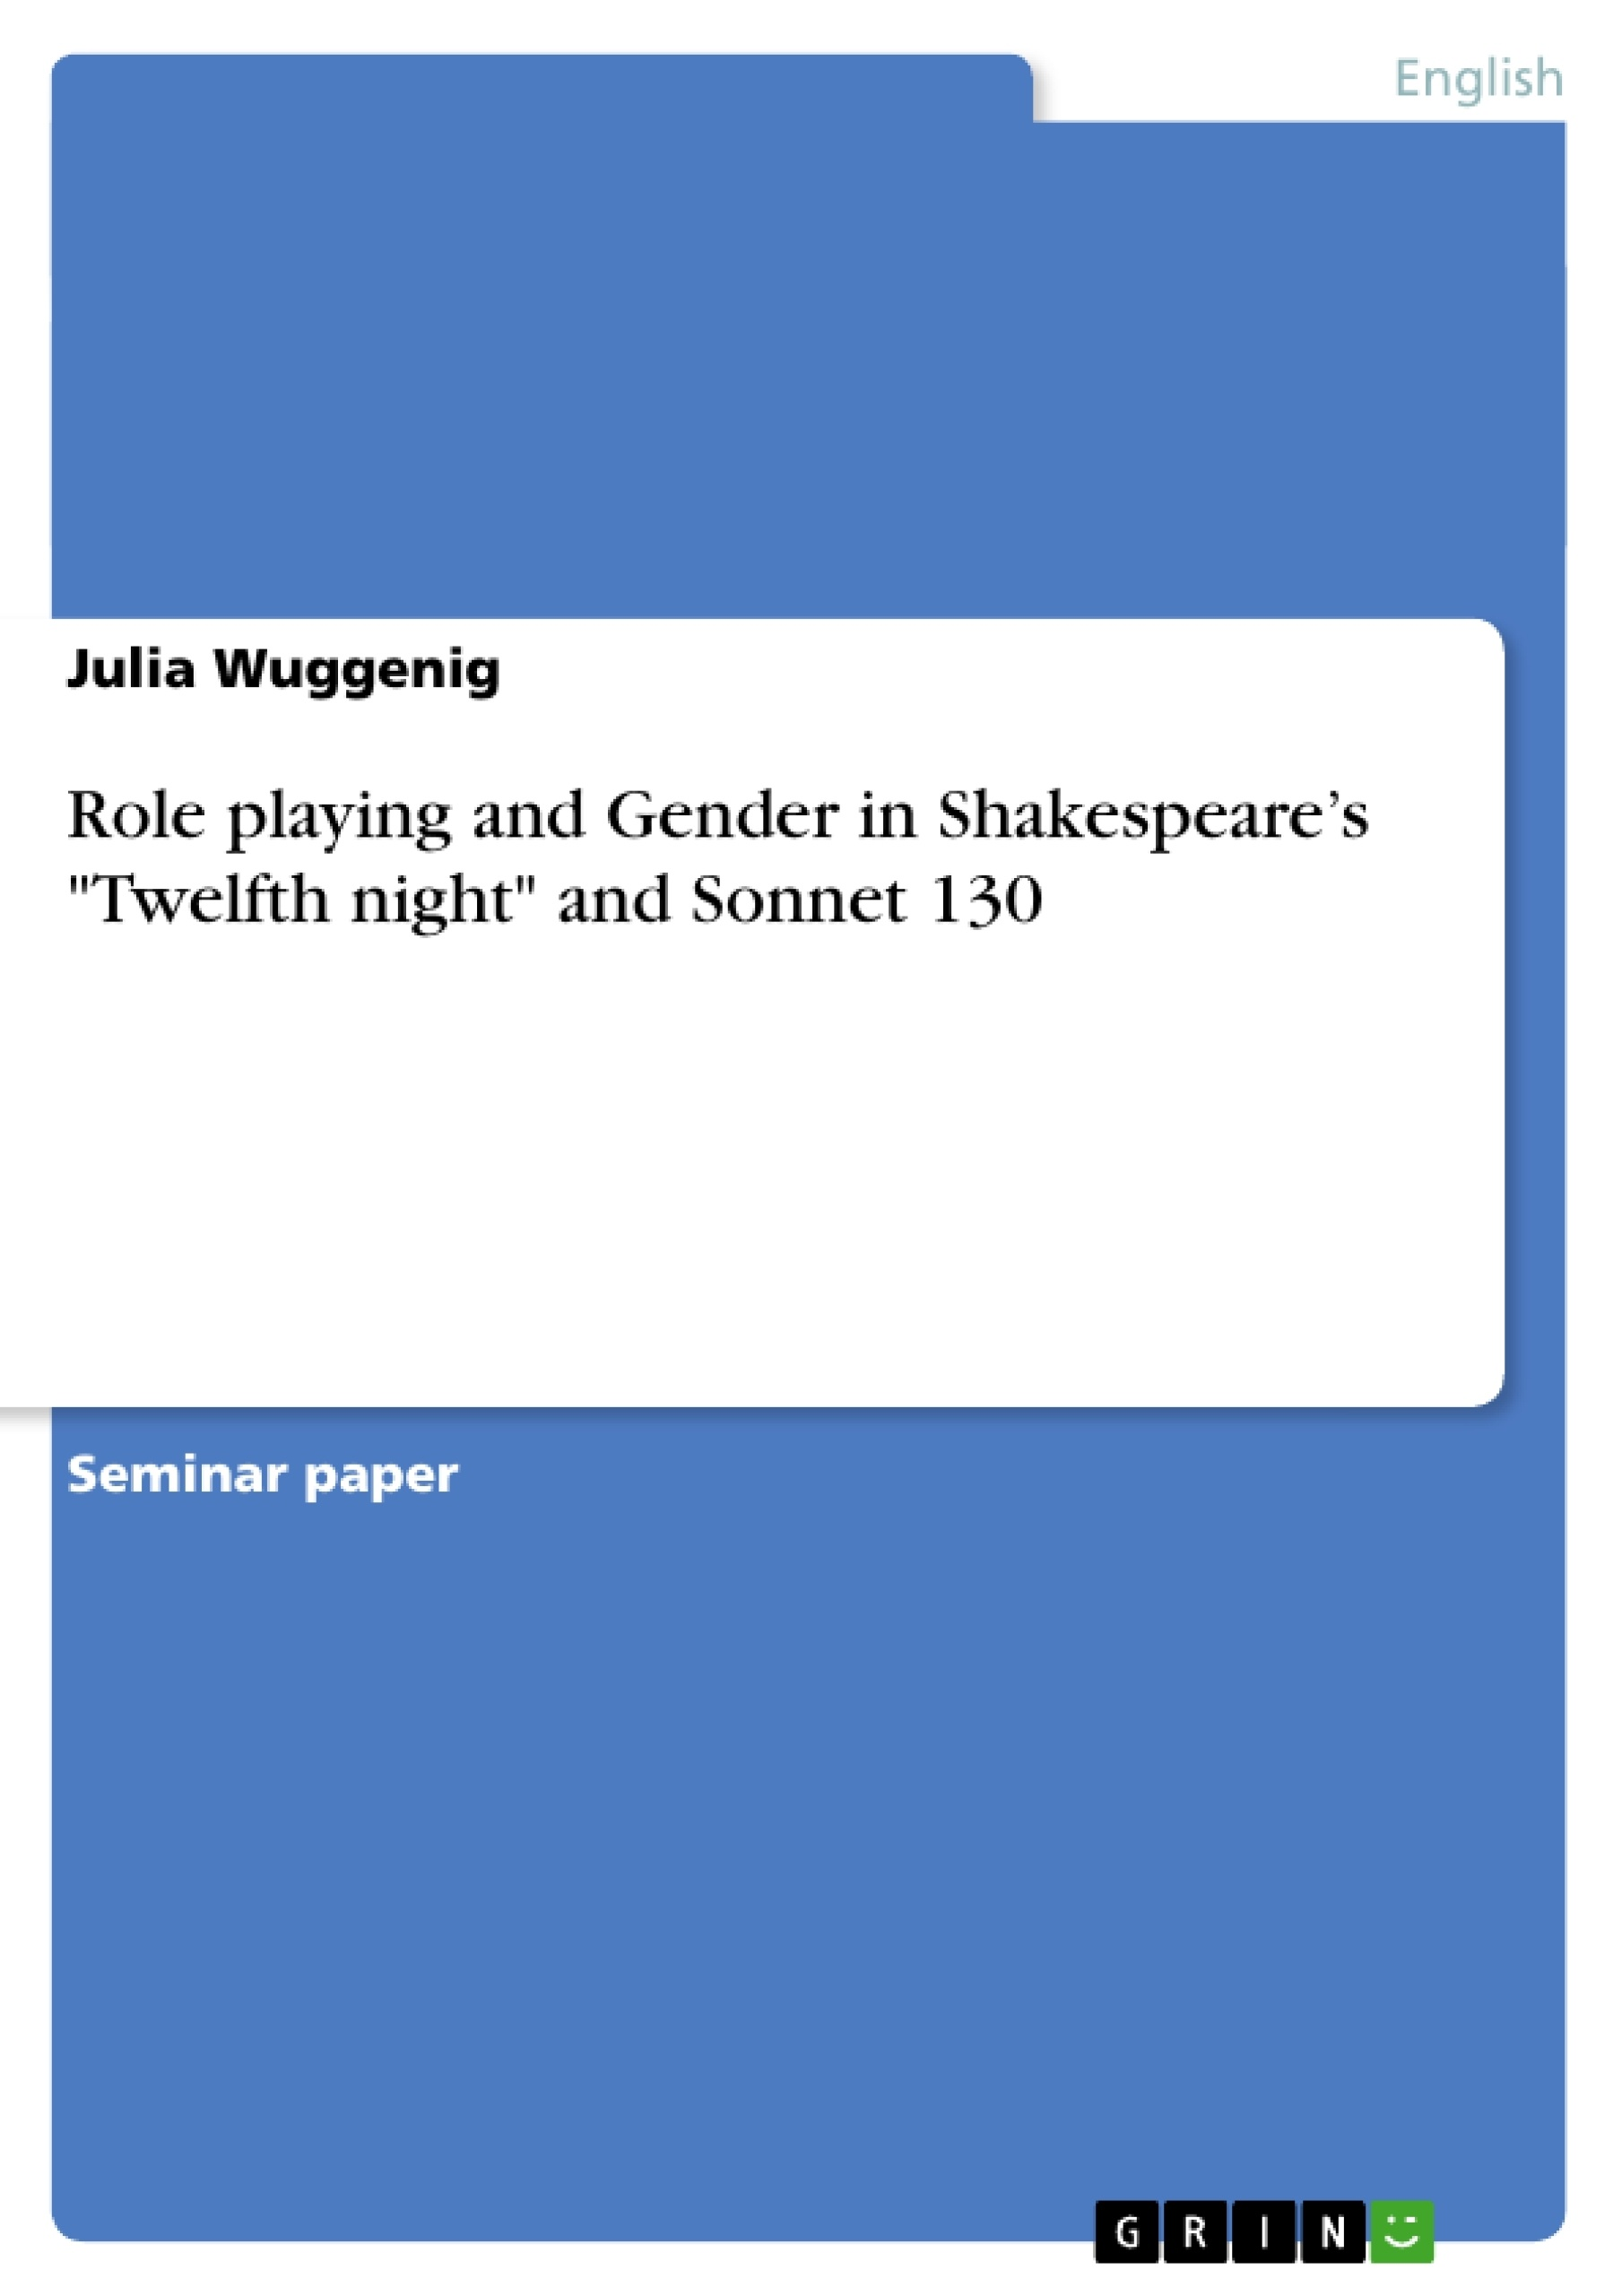 twelfth night essay on comedy Twelfth night is based on a series of mistaken twelfth night essay questions table of the play and that this meeting is at the very end of the comedy.